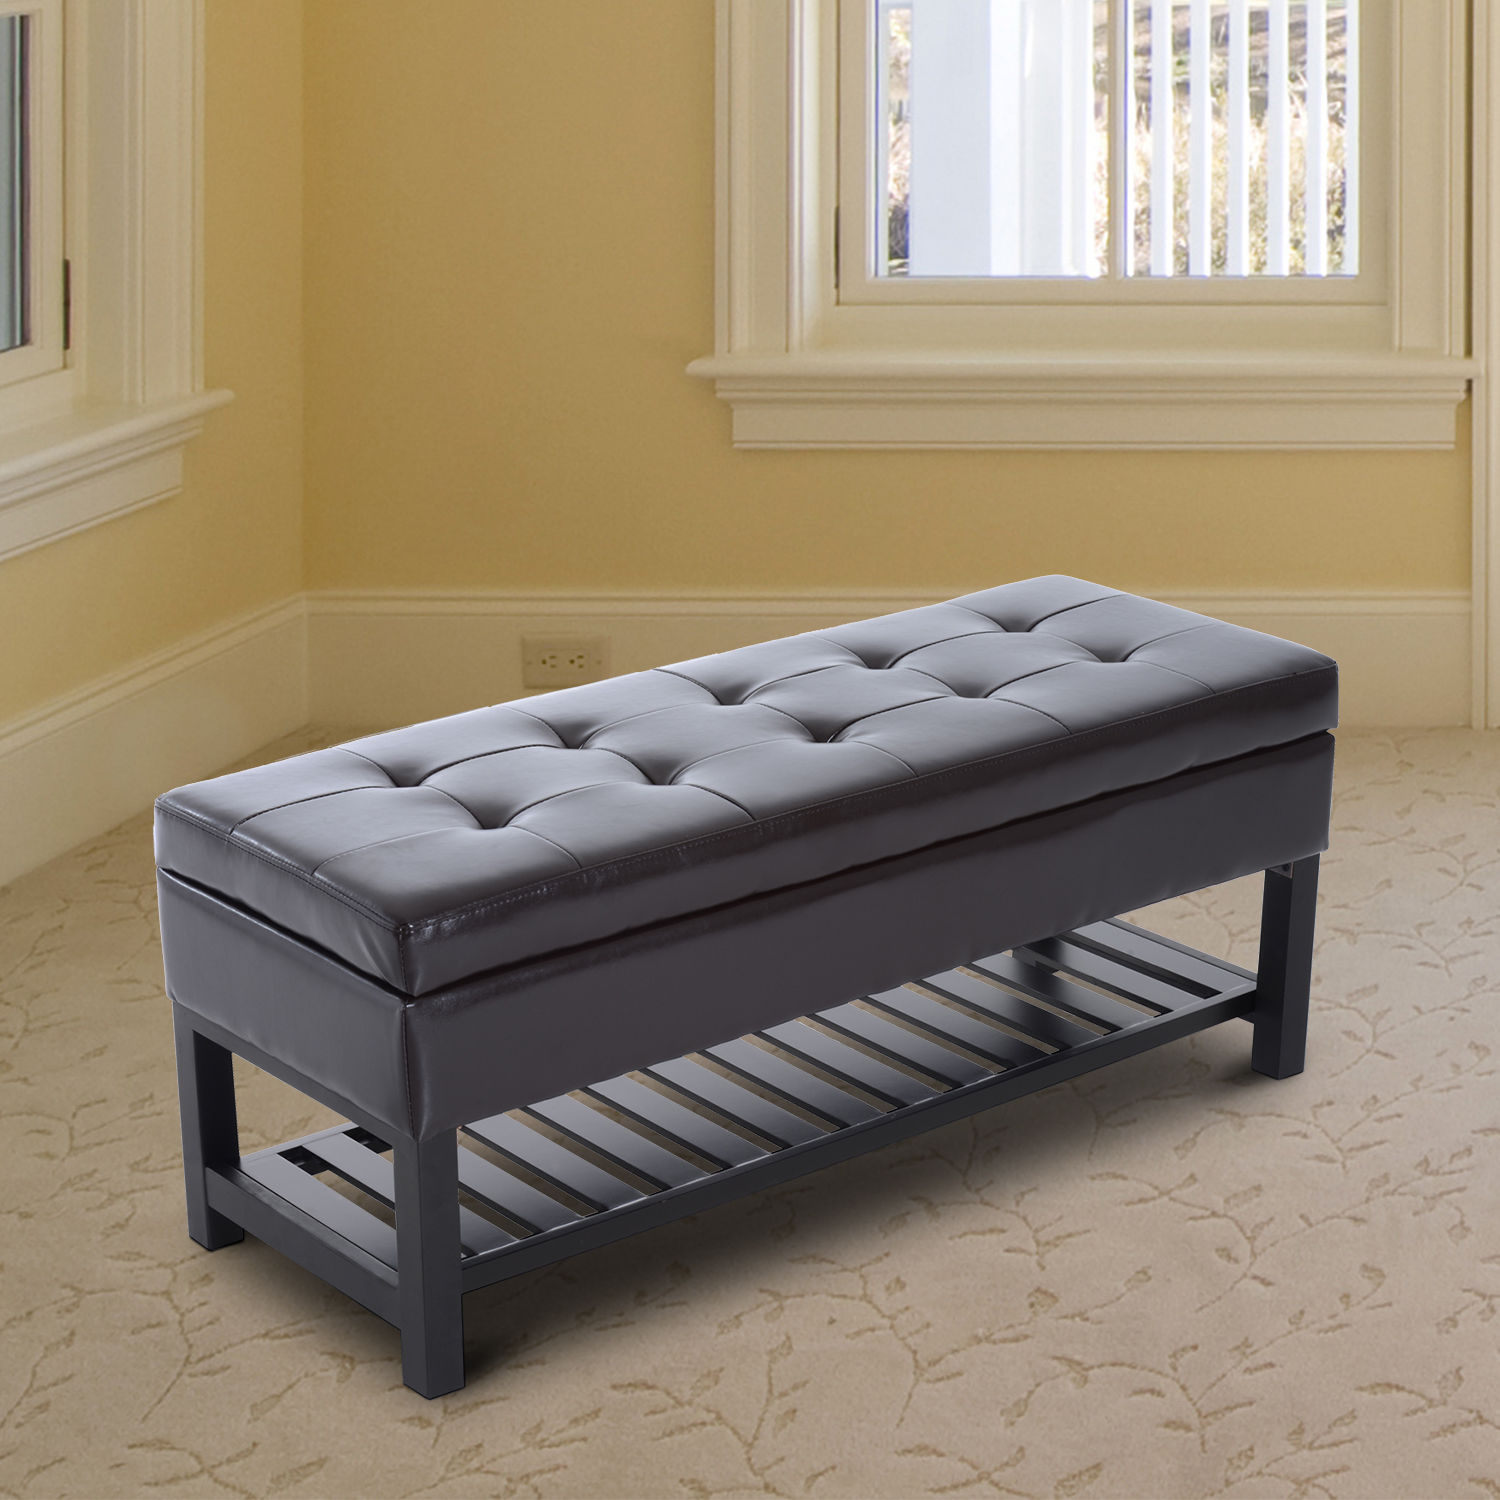 44 Quot Brown Faux Leather Ottoman Bench Seat With Storage And